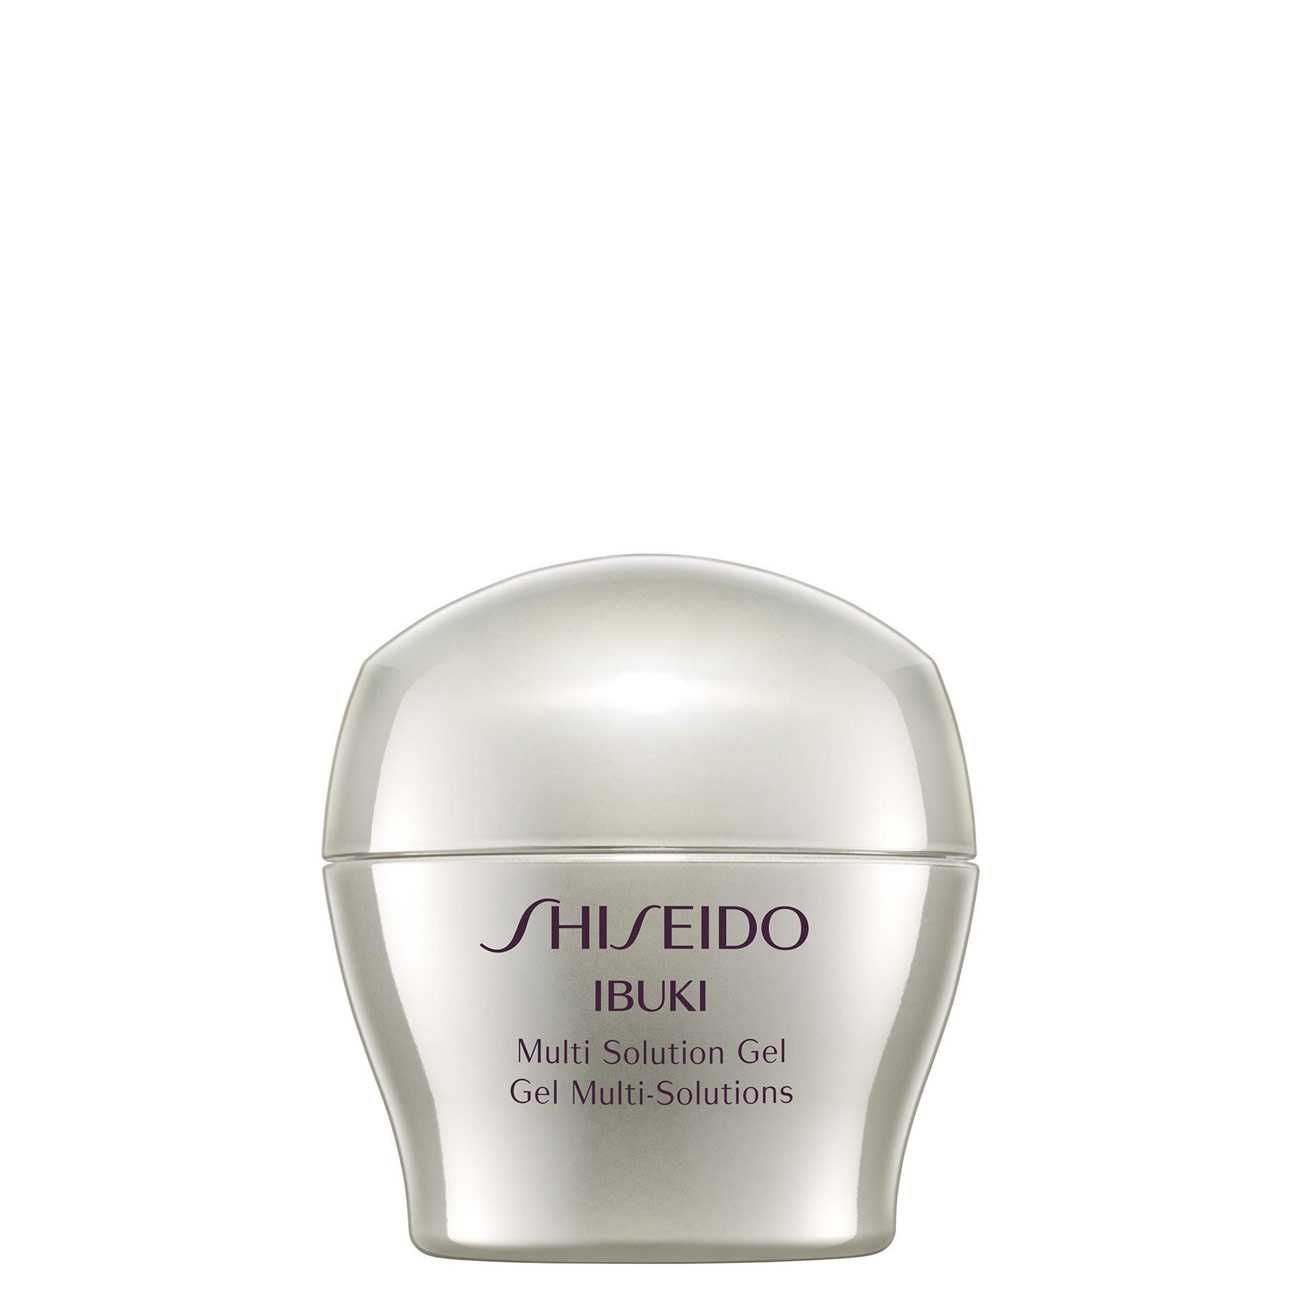 Ibuki Multi Solution Gel 30 Ml Shiseido imagine 2021 bestvalue.eu